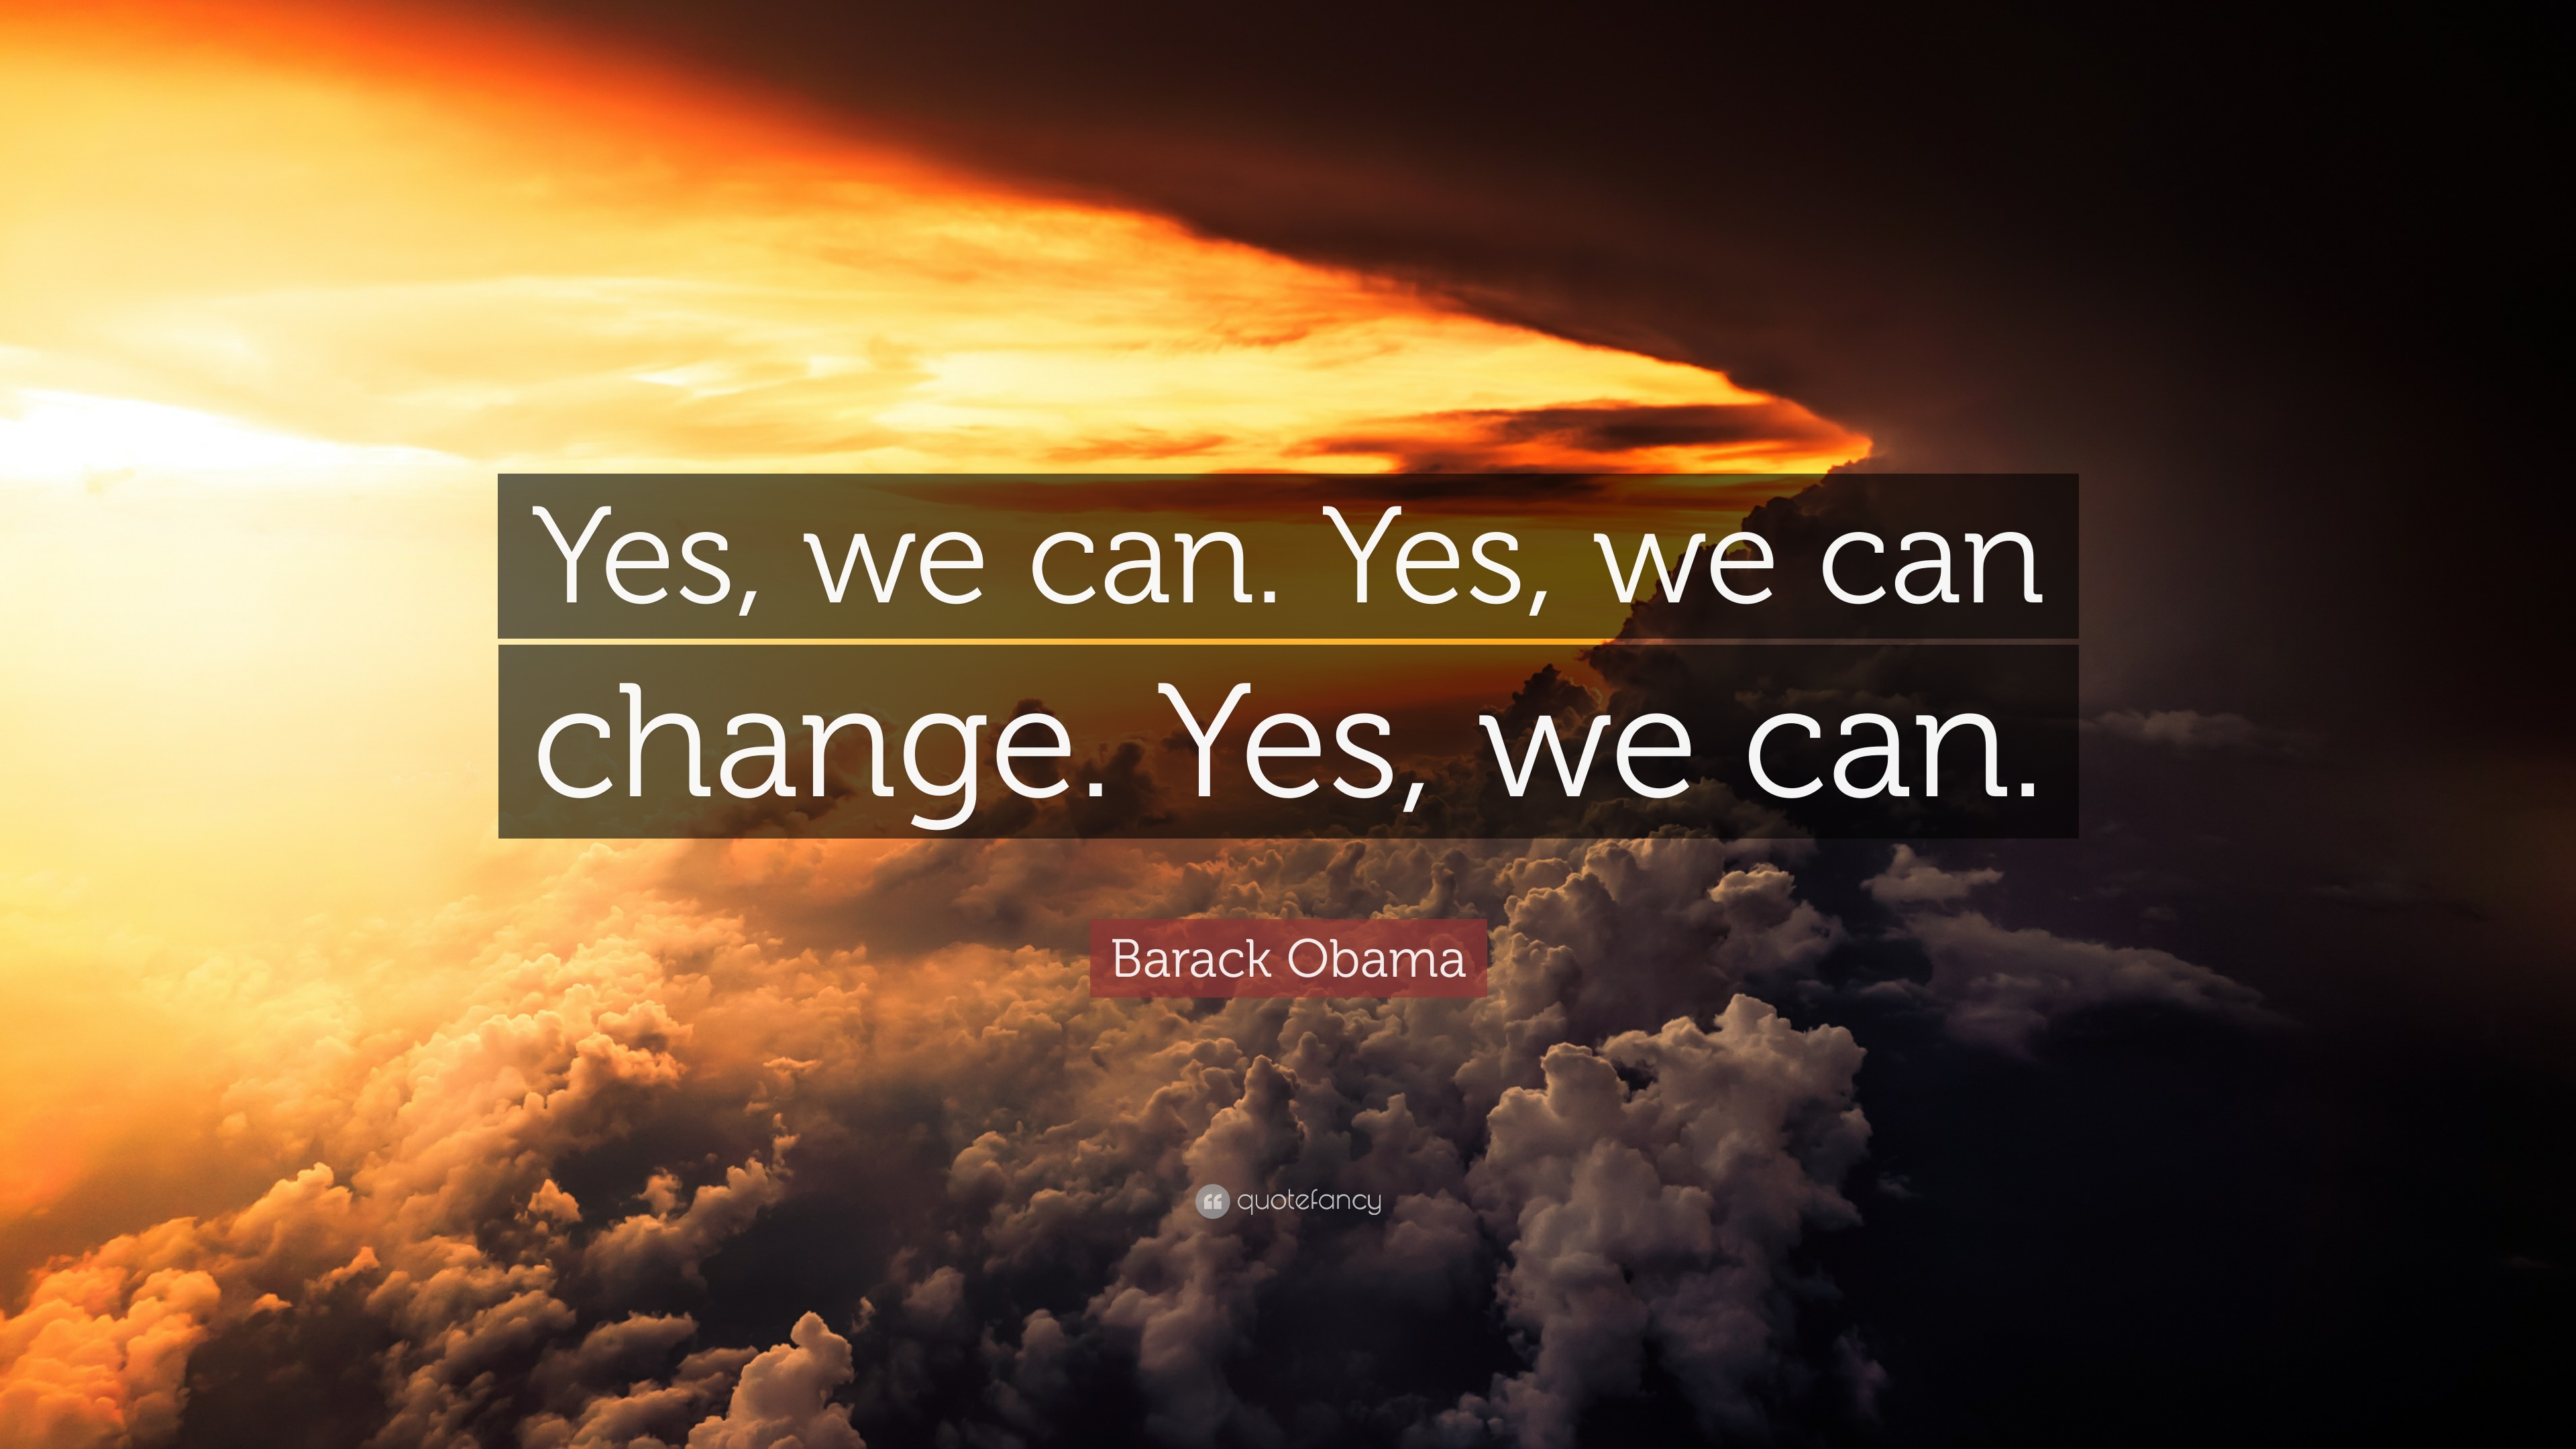 Barack Obama Quote Yes We Can Yes We Can Change Yes We Can